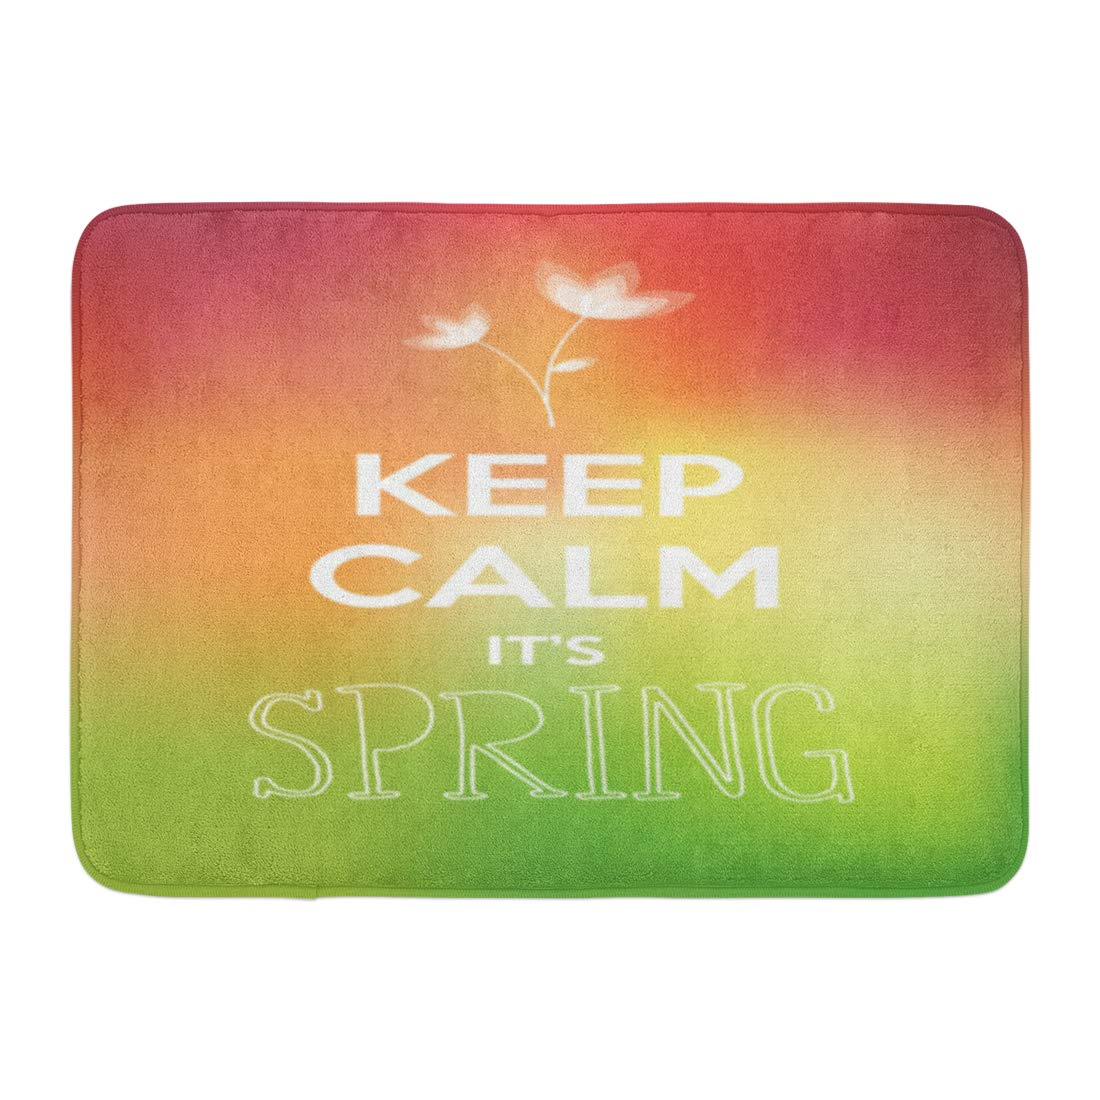 GODPOK White Blossom Green Aura Keep Calm It's Spring Pink Blooming Blurry Rug Doormat Bath Mat 23.6x15.7 inch